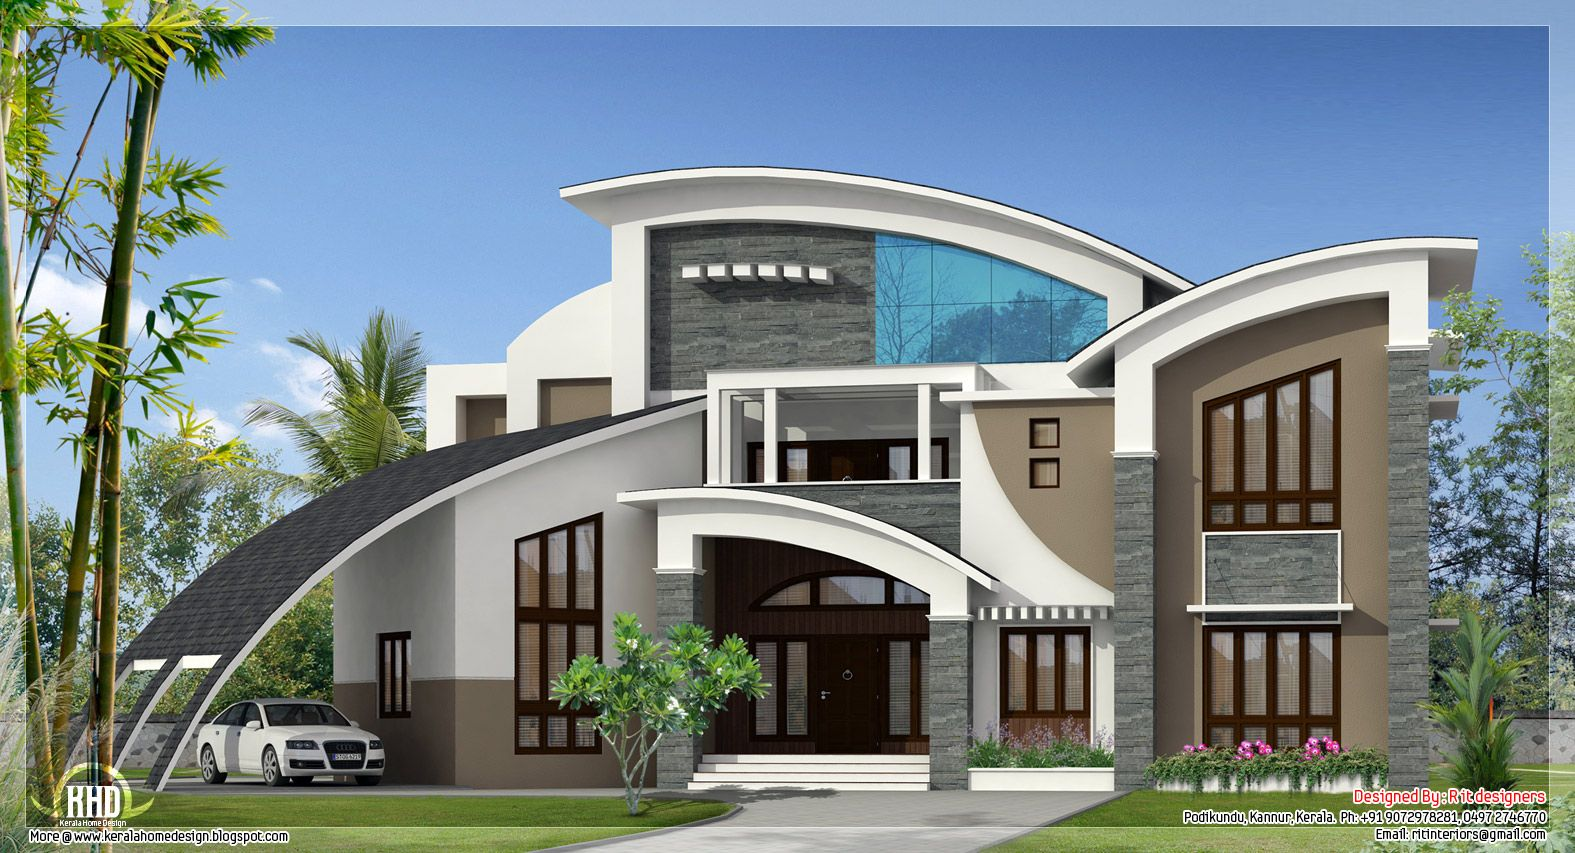 Inspiring Luxury Home Plan 12 Unique Home Designs House Plans